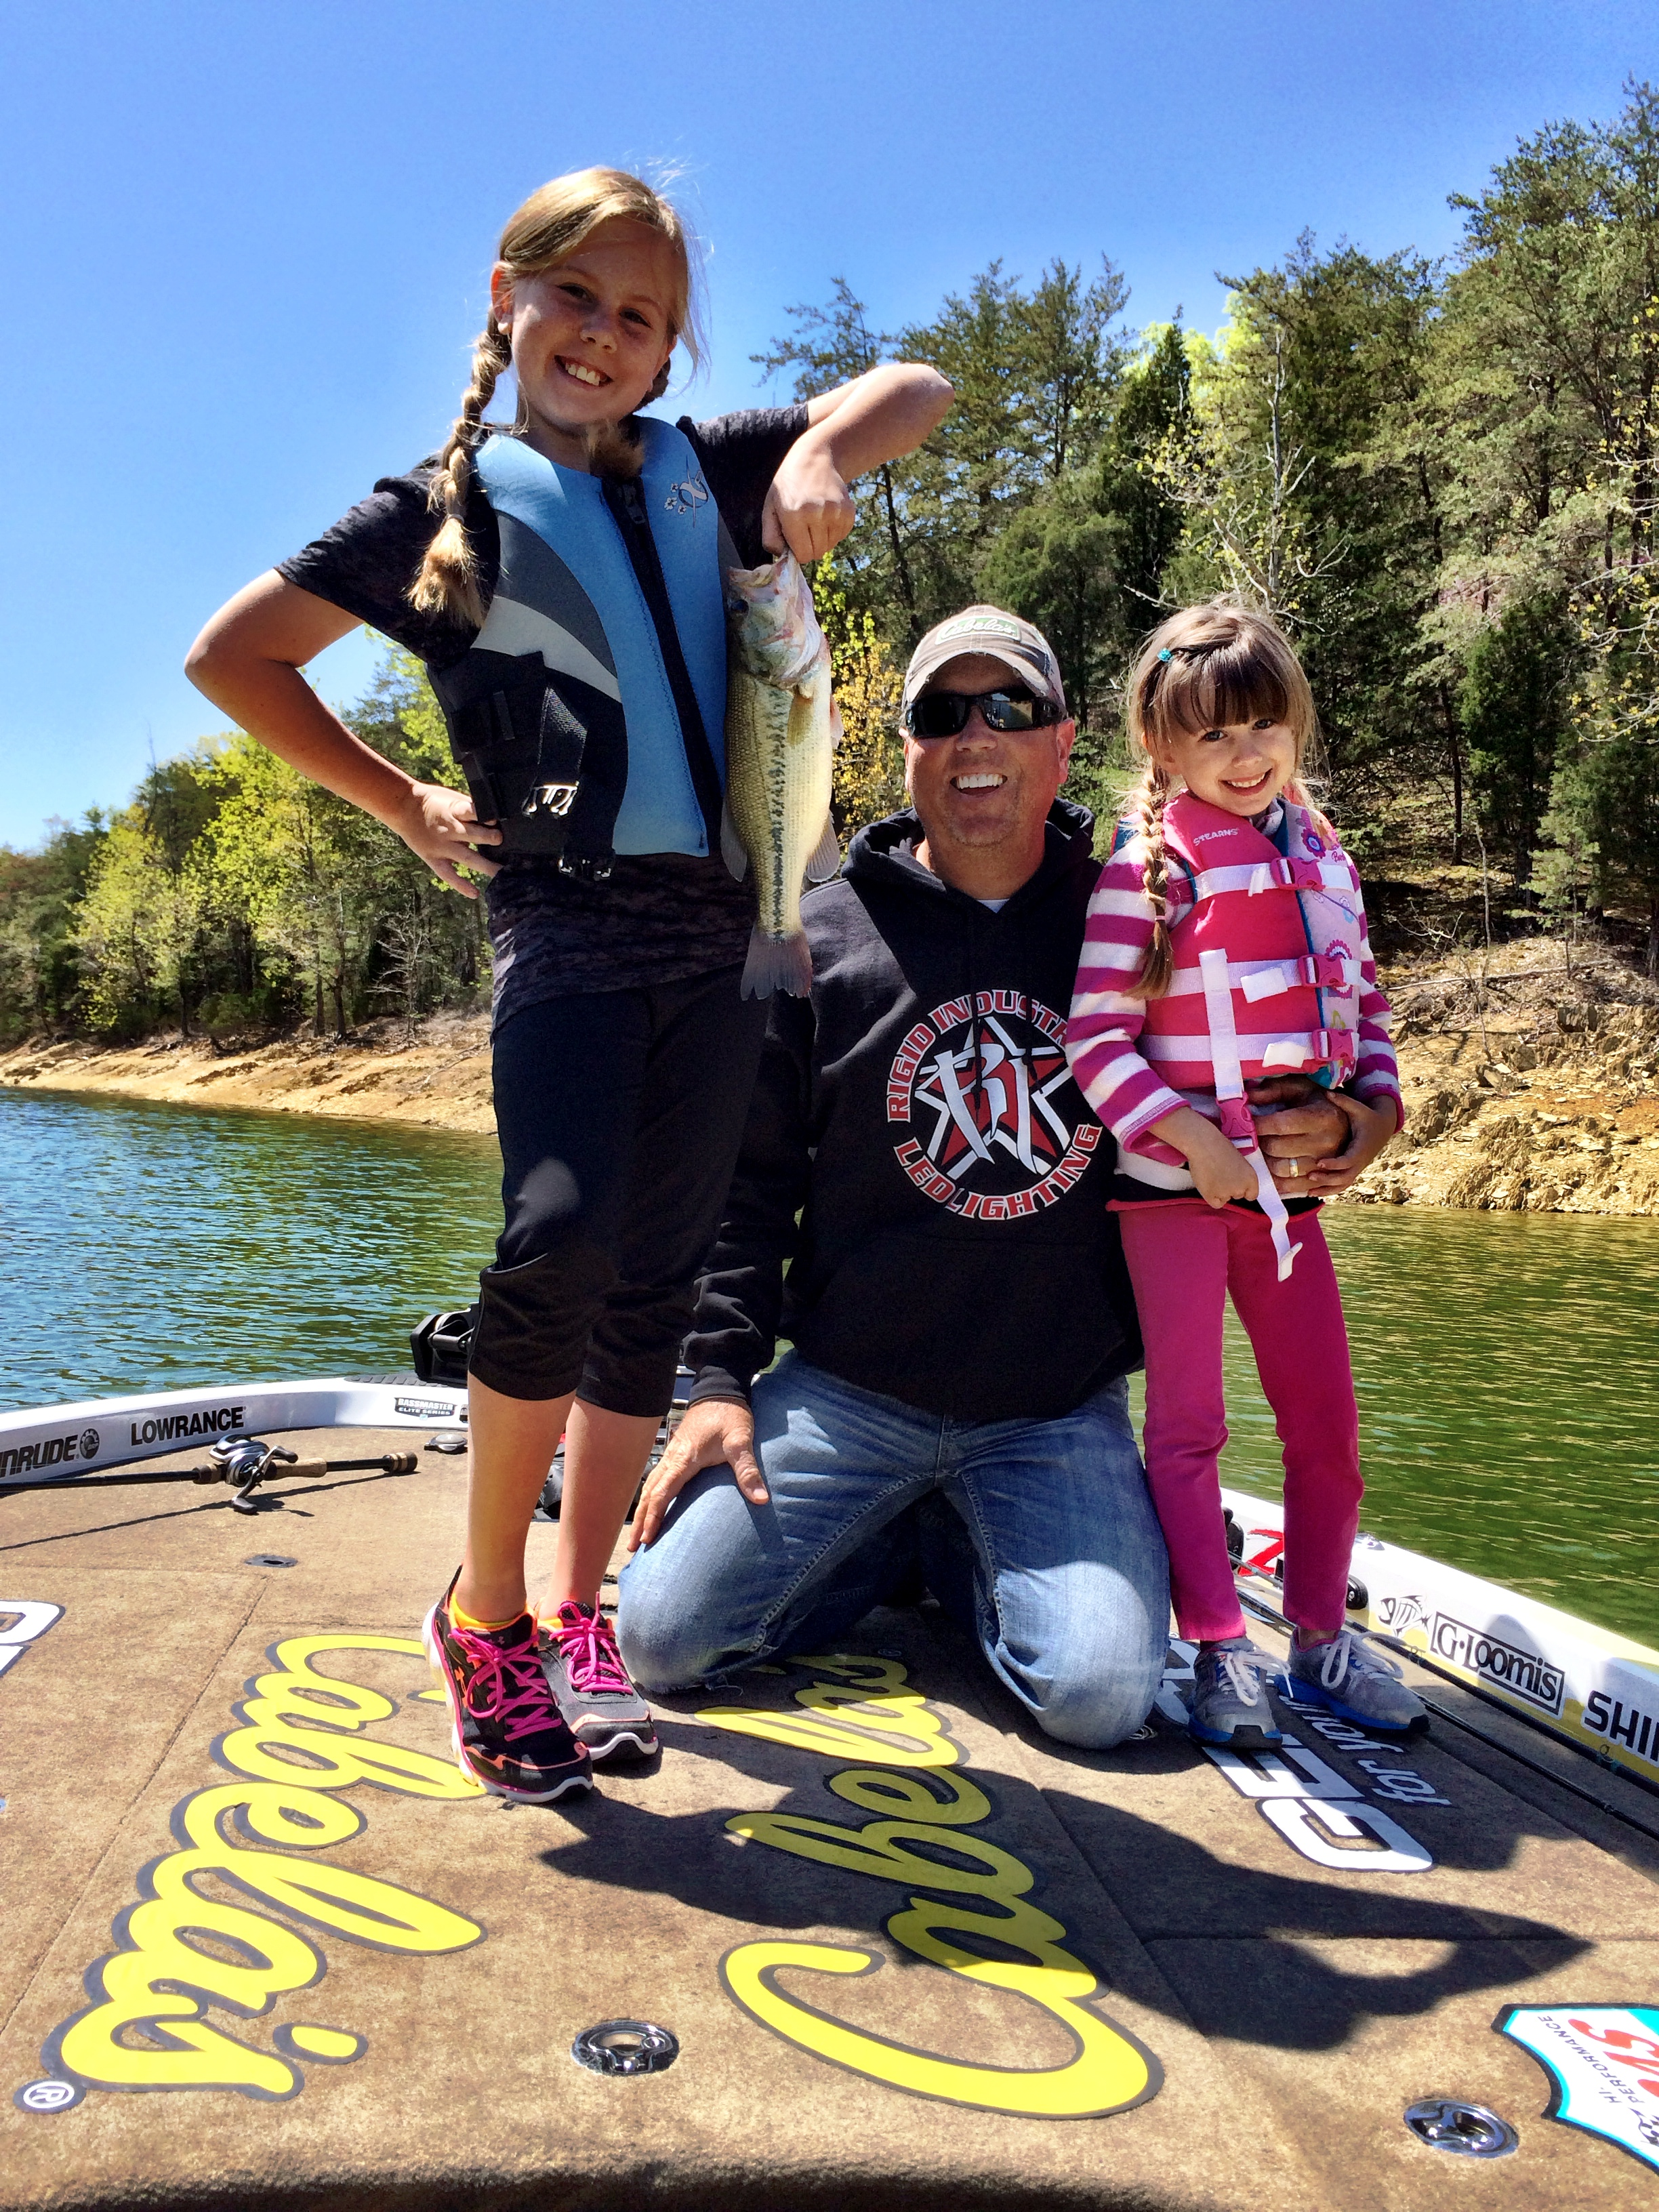 David Walker and his youngins catching the big ones!